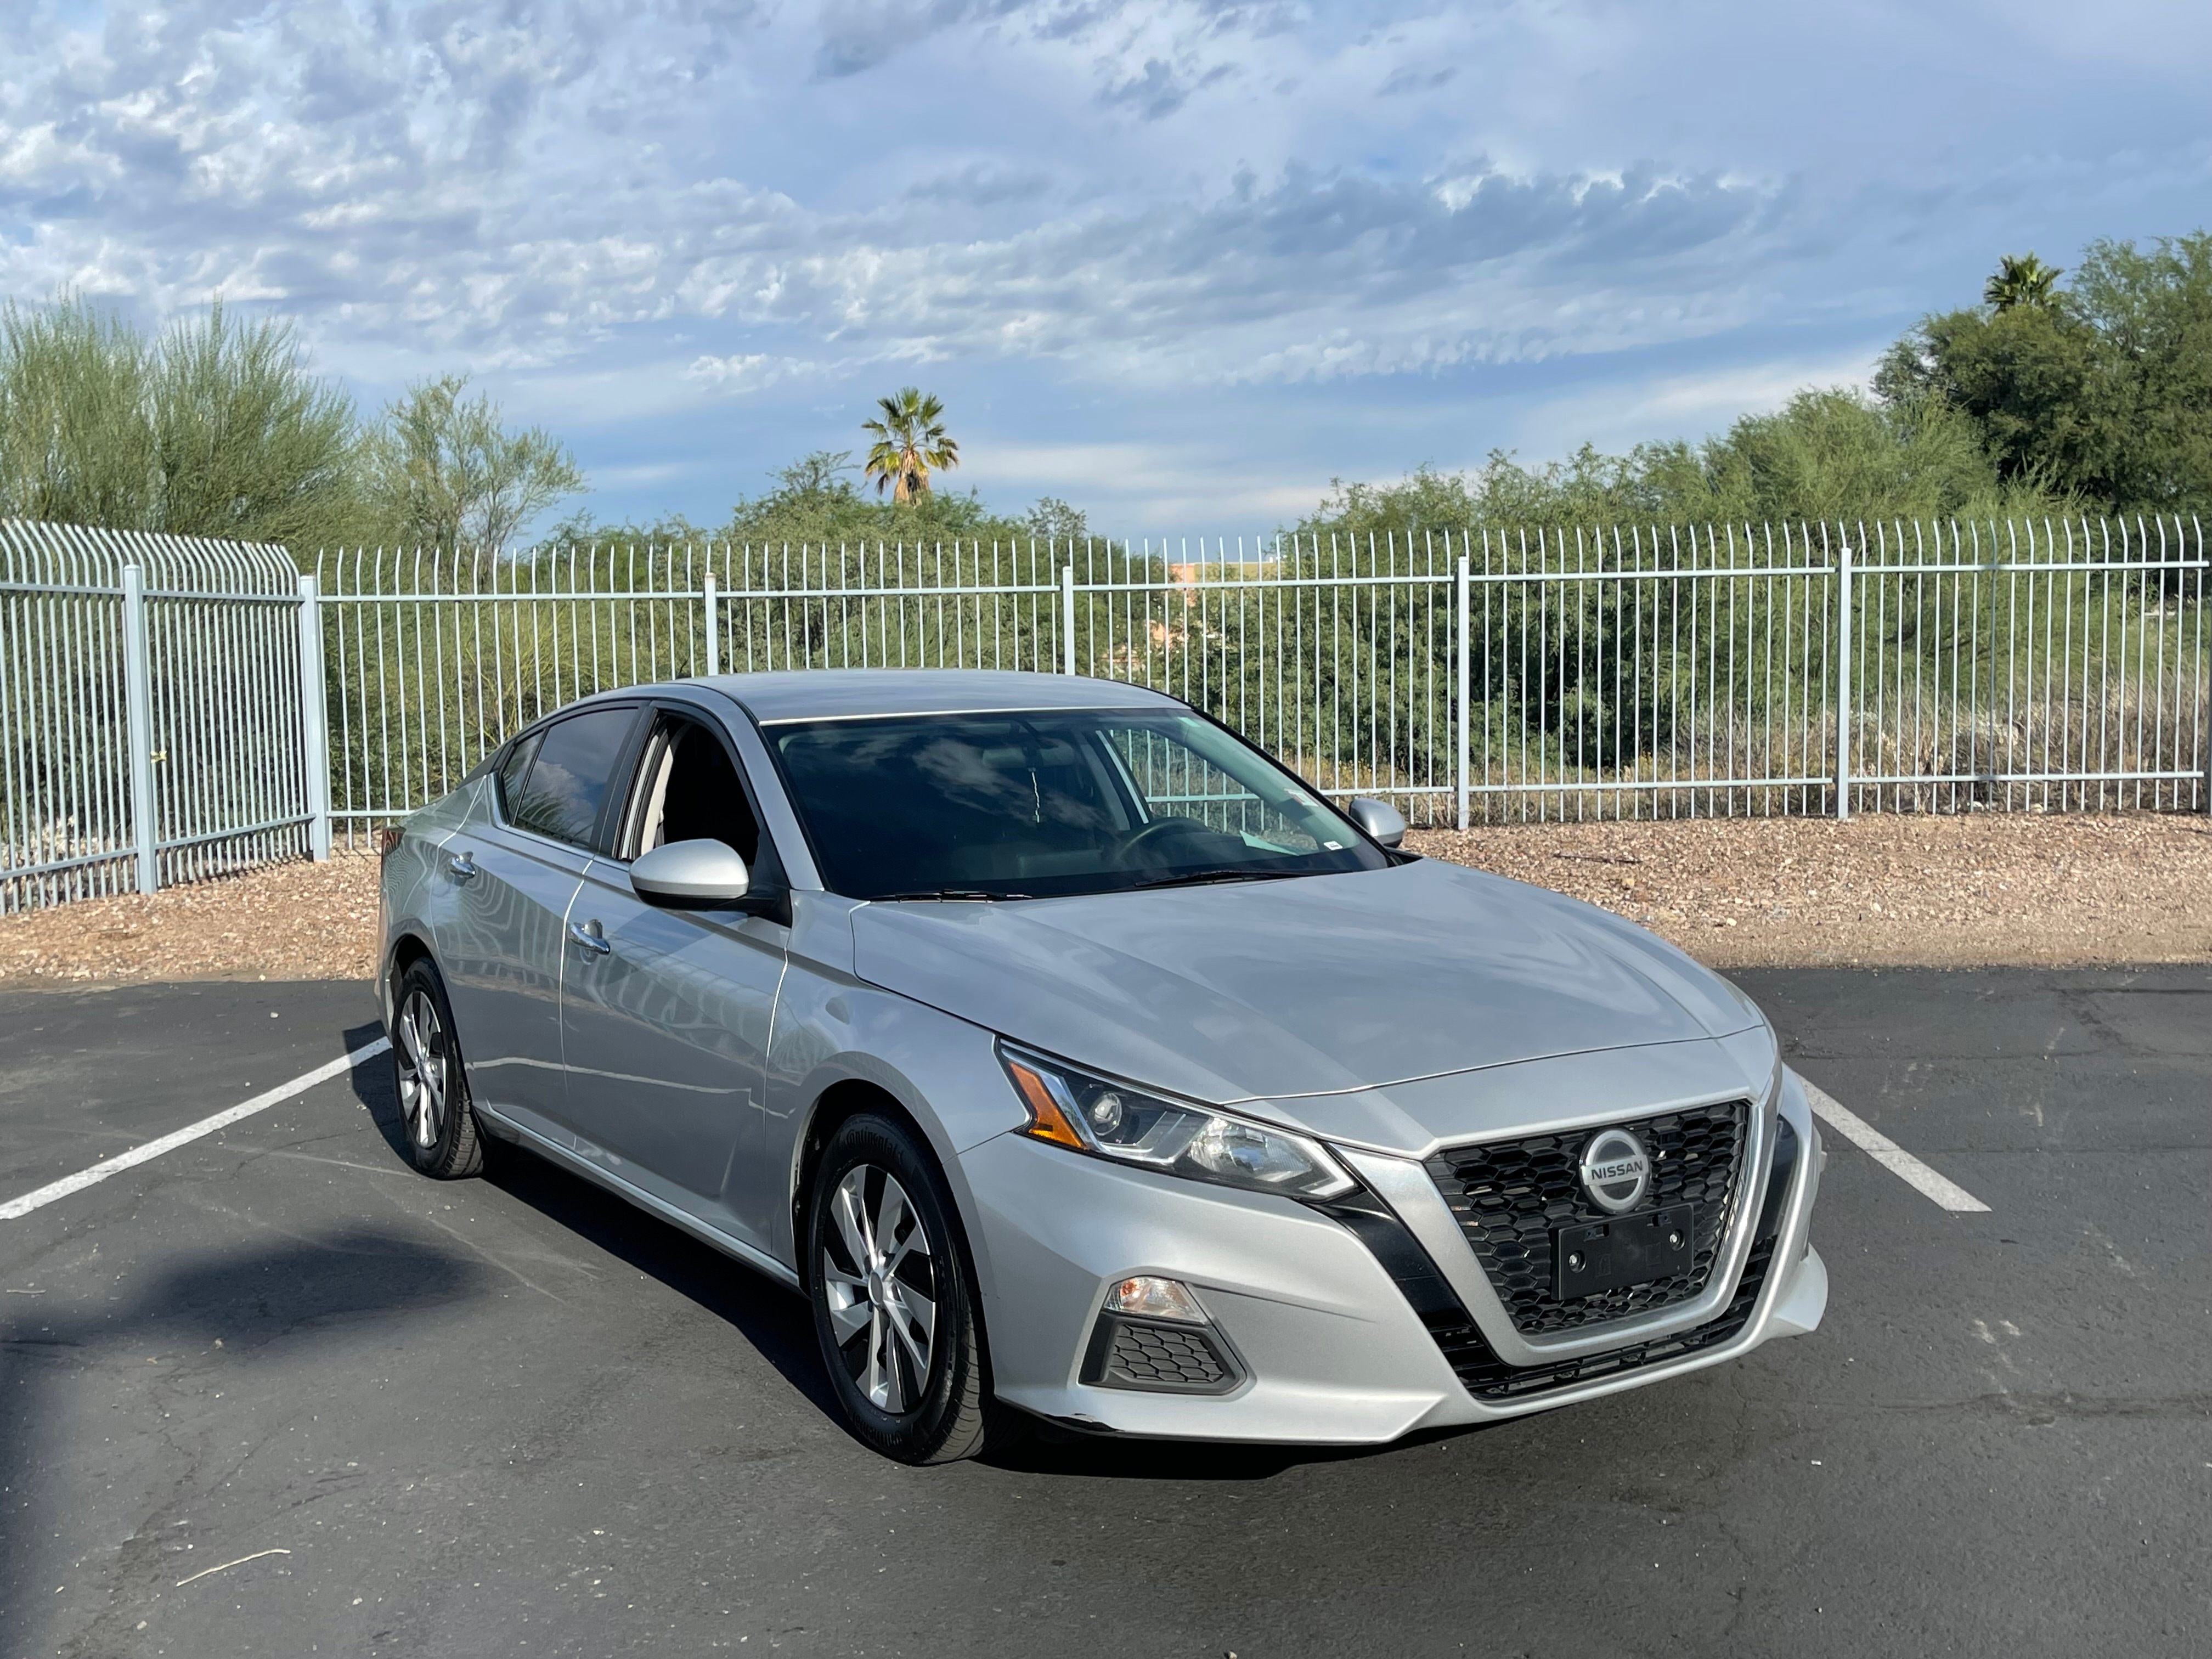 2019 nissan altima for sale in tucson